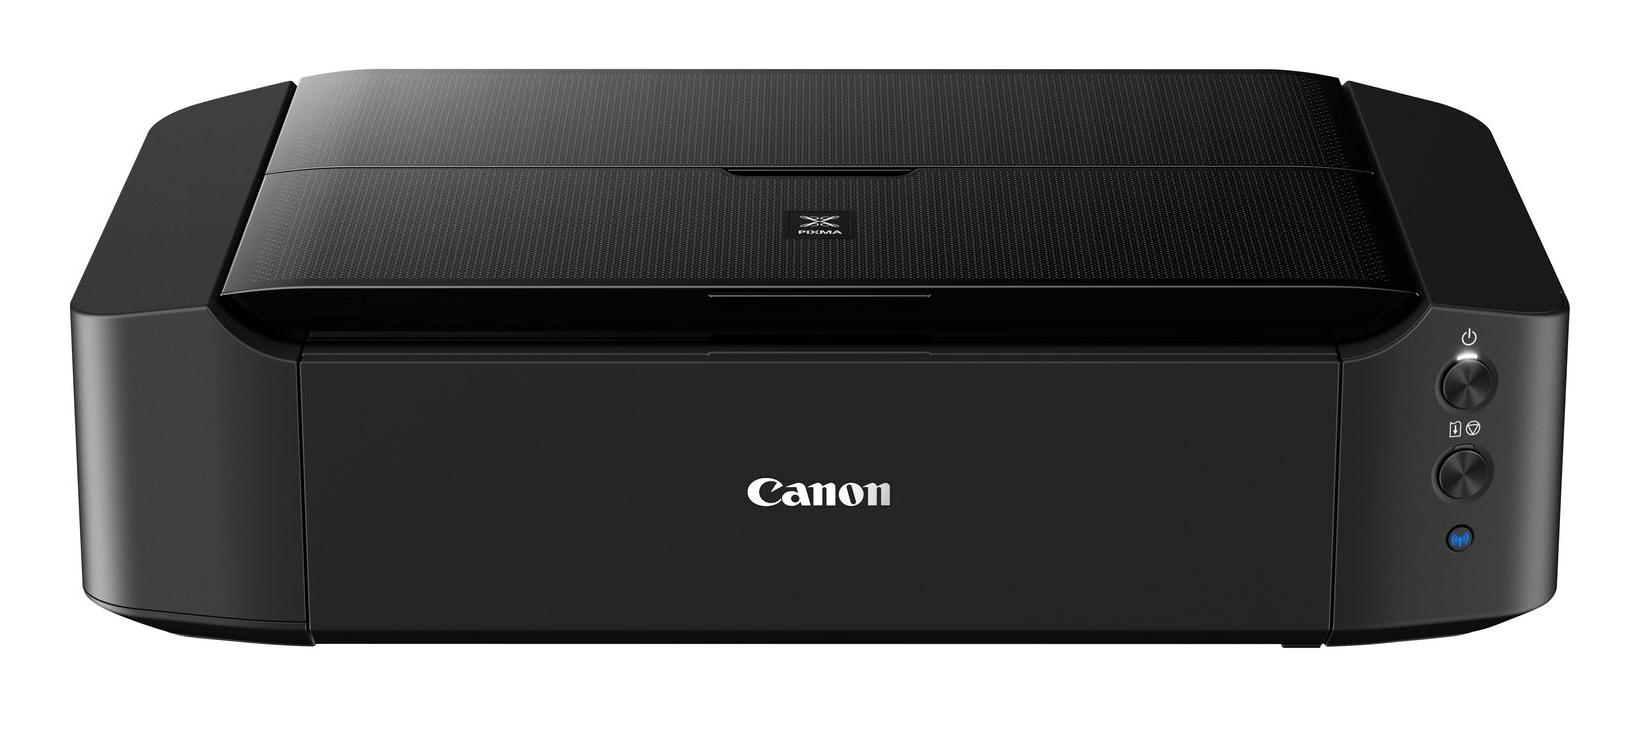 Canon - Bj Sfp                   Pixma Ip8750 A3+ Inkjet Printer     Sf/airprint/blk                  In 8746b008